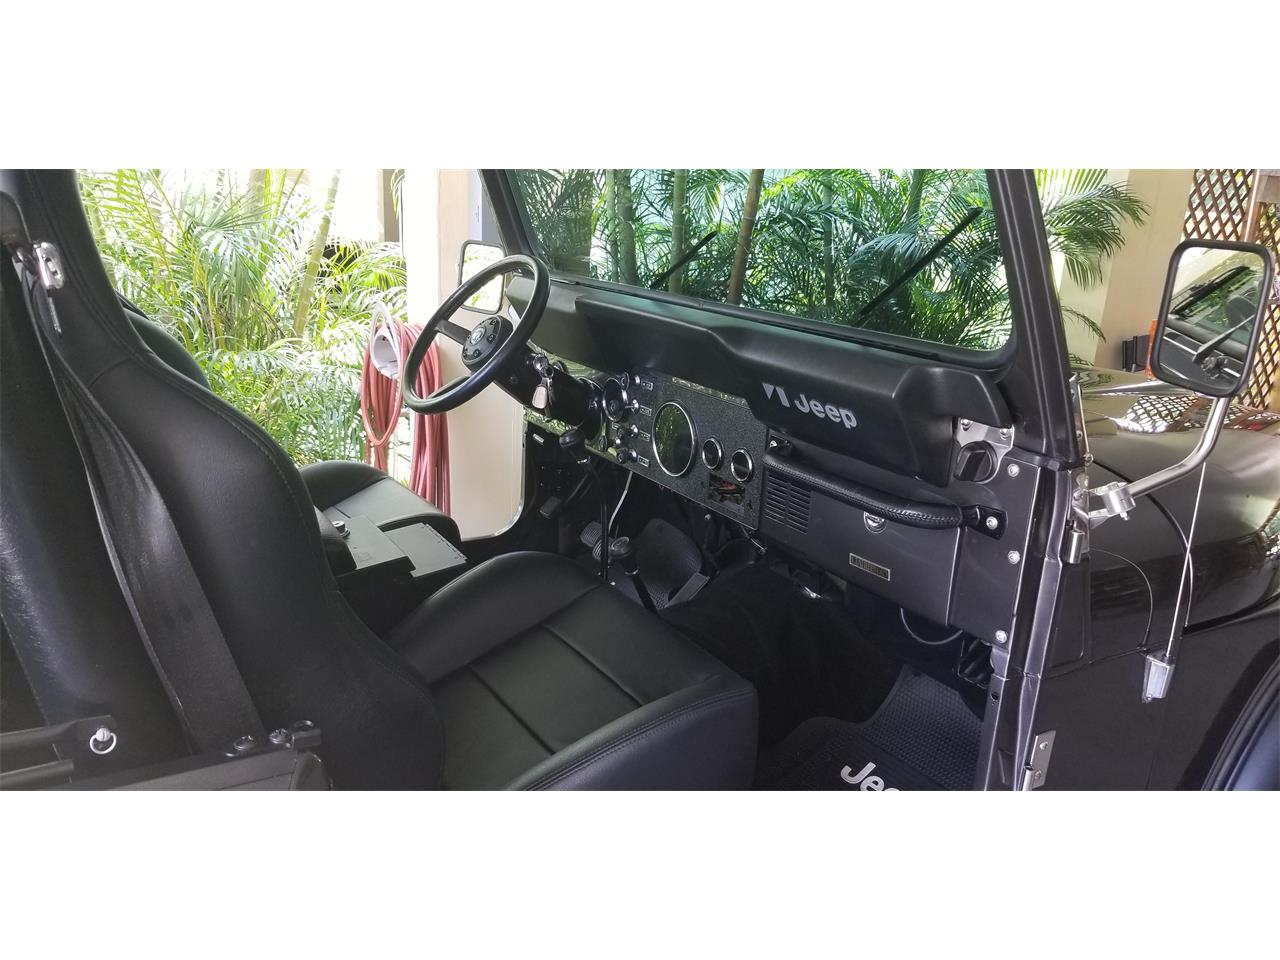 Large Picture of '85 Jeep CJ7 - $32,500.00 Offered by a Private Seller - OF9X